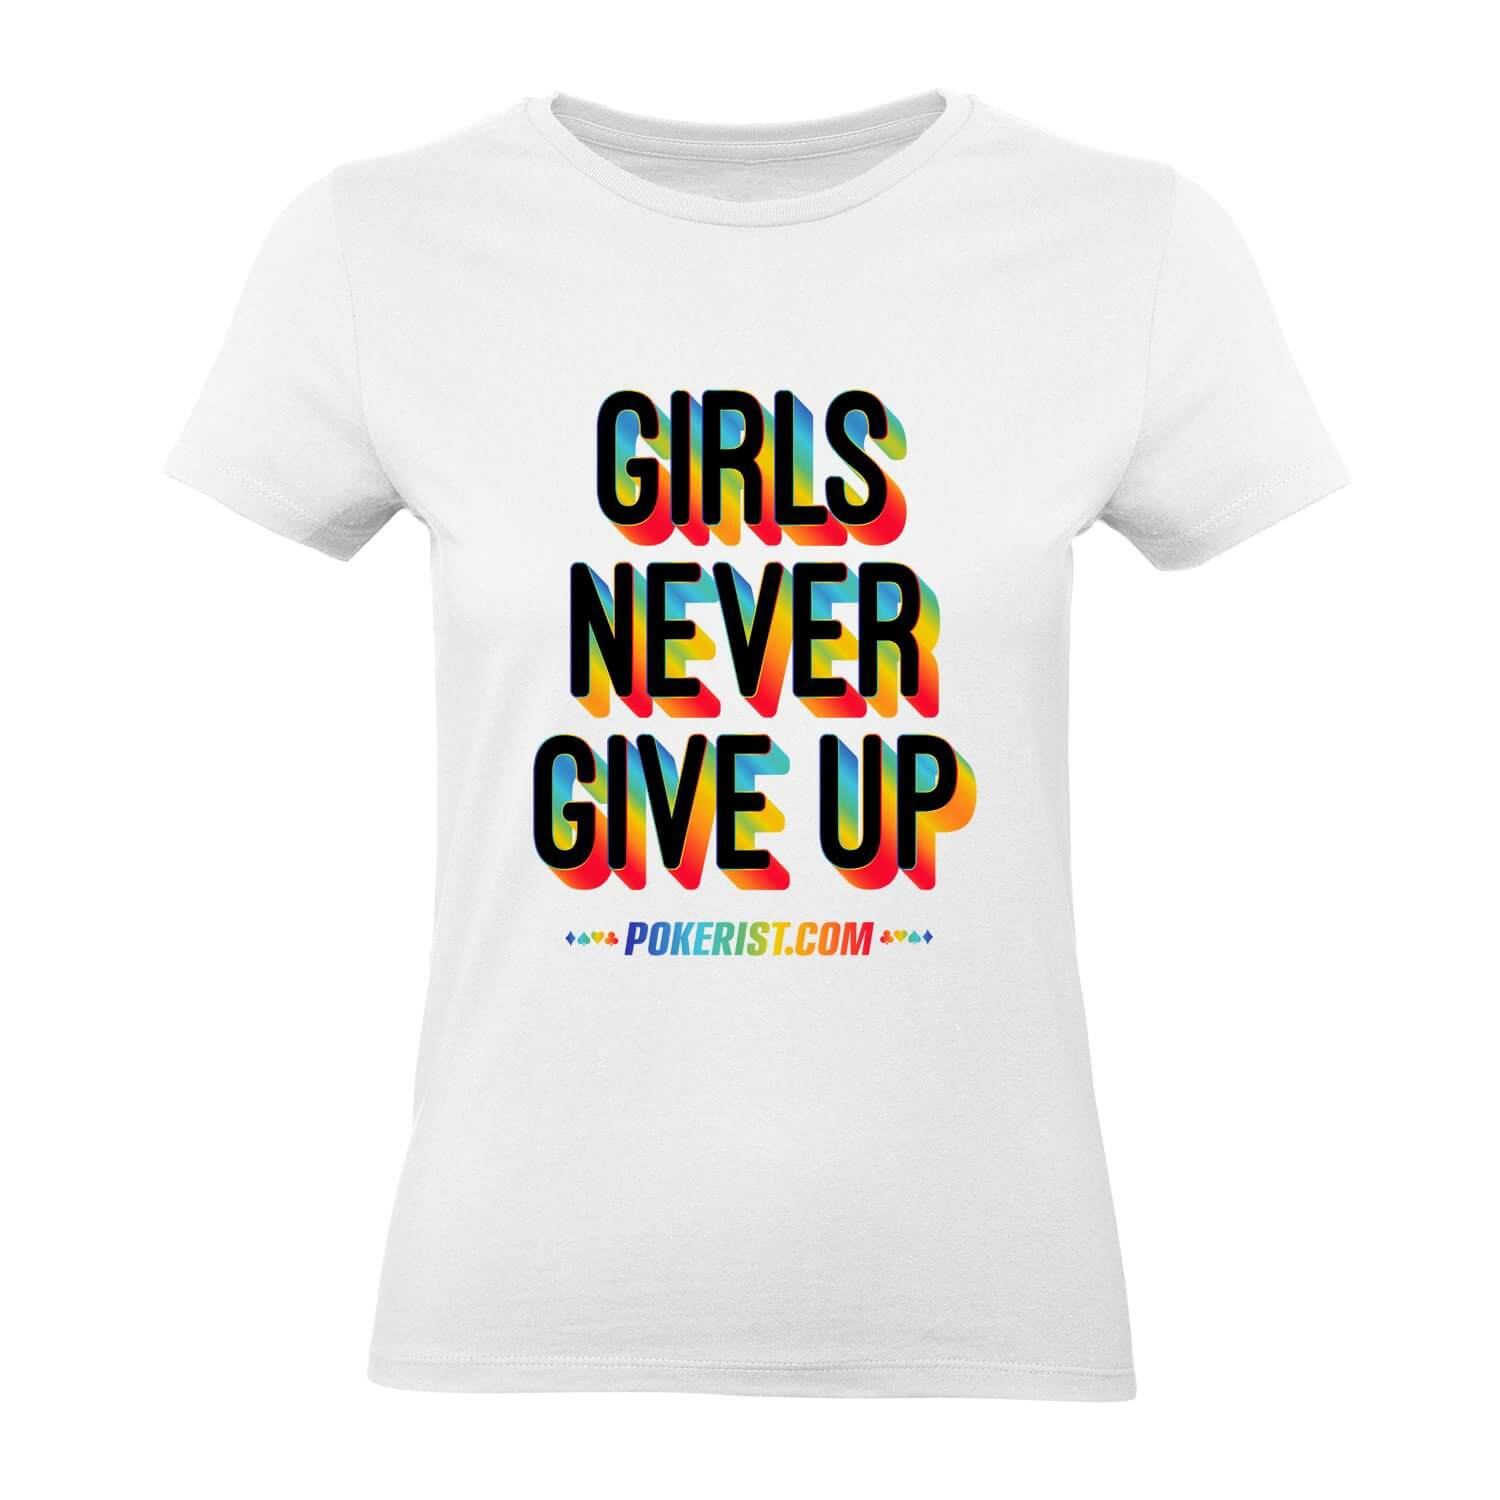 Girls Never Give Up Womens Tee